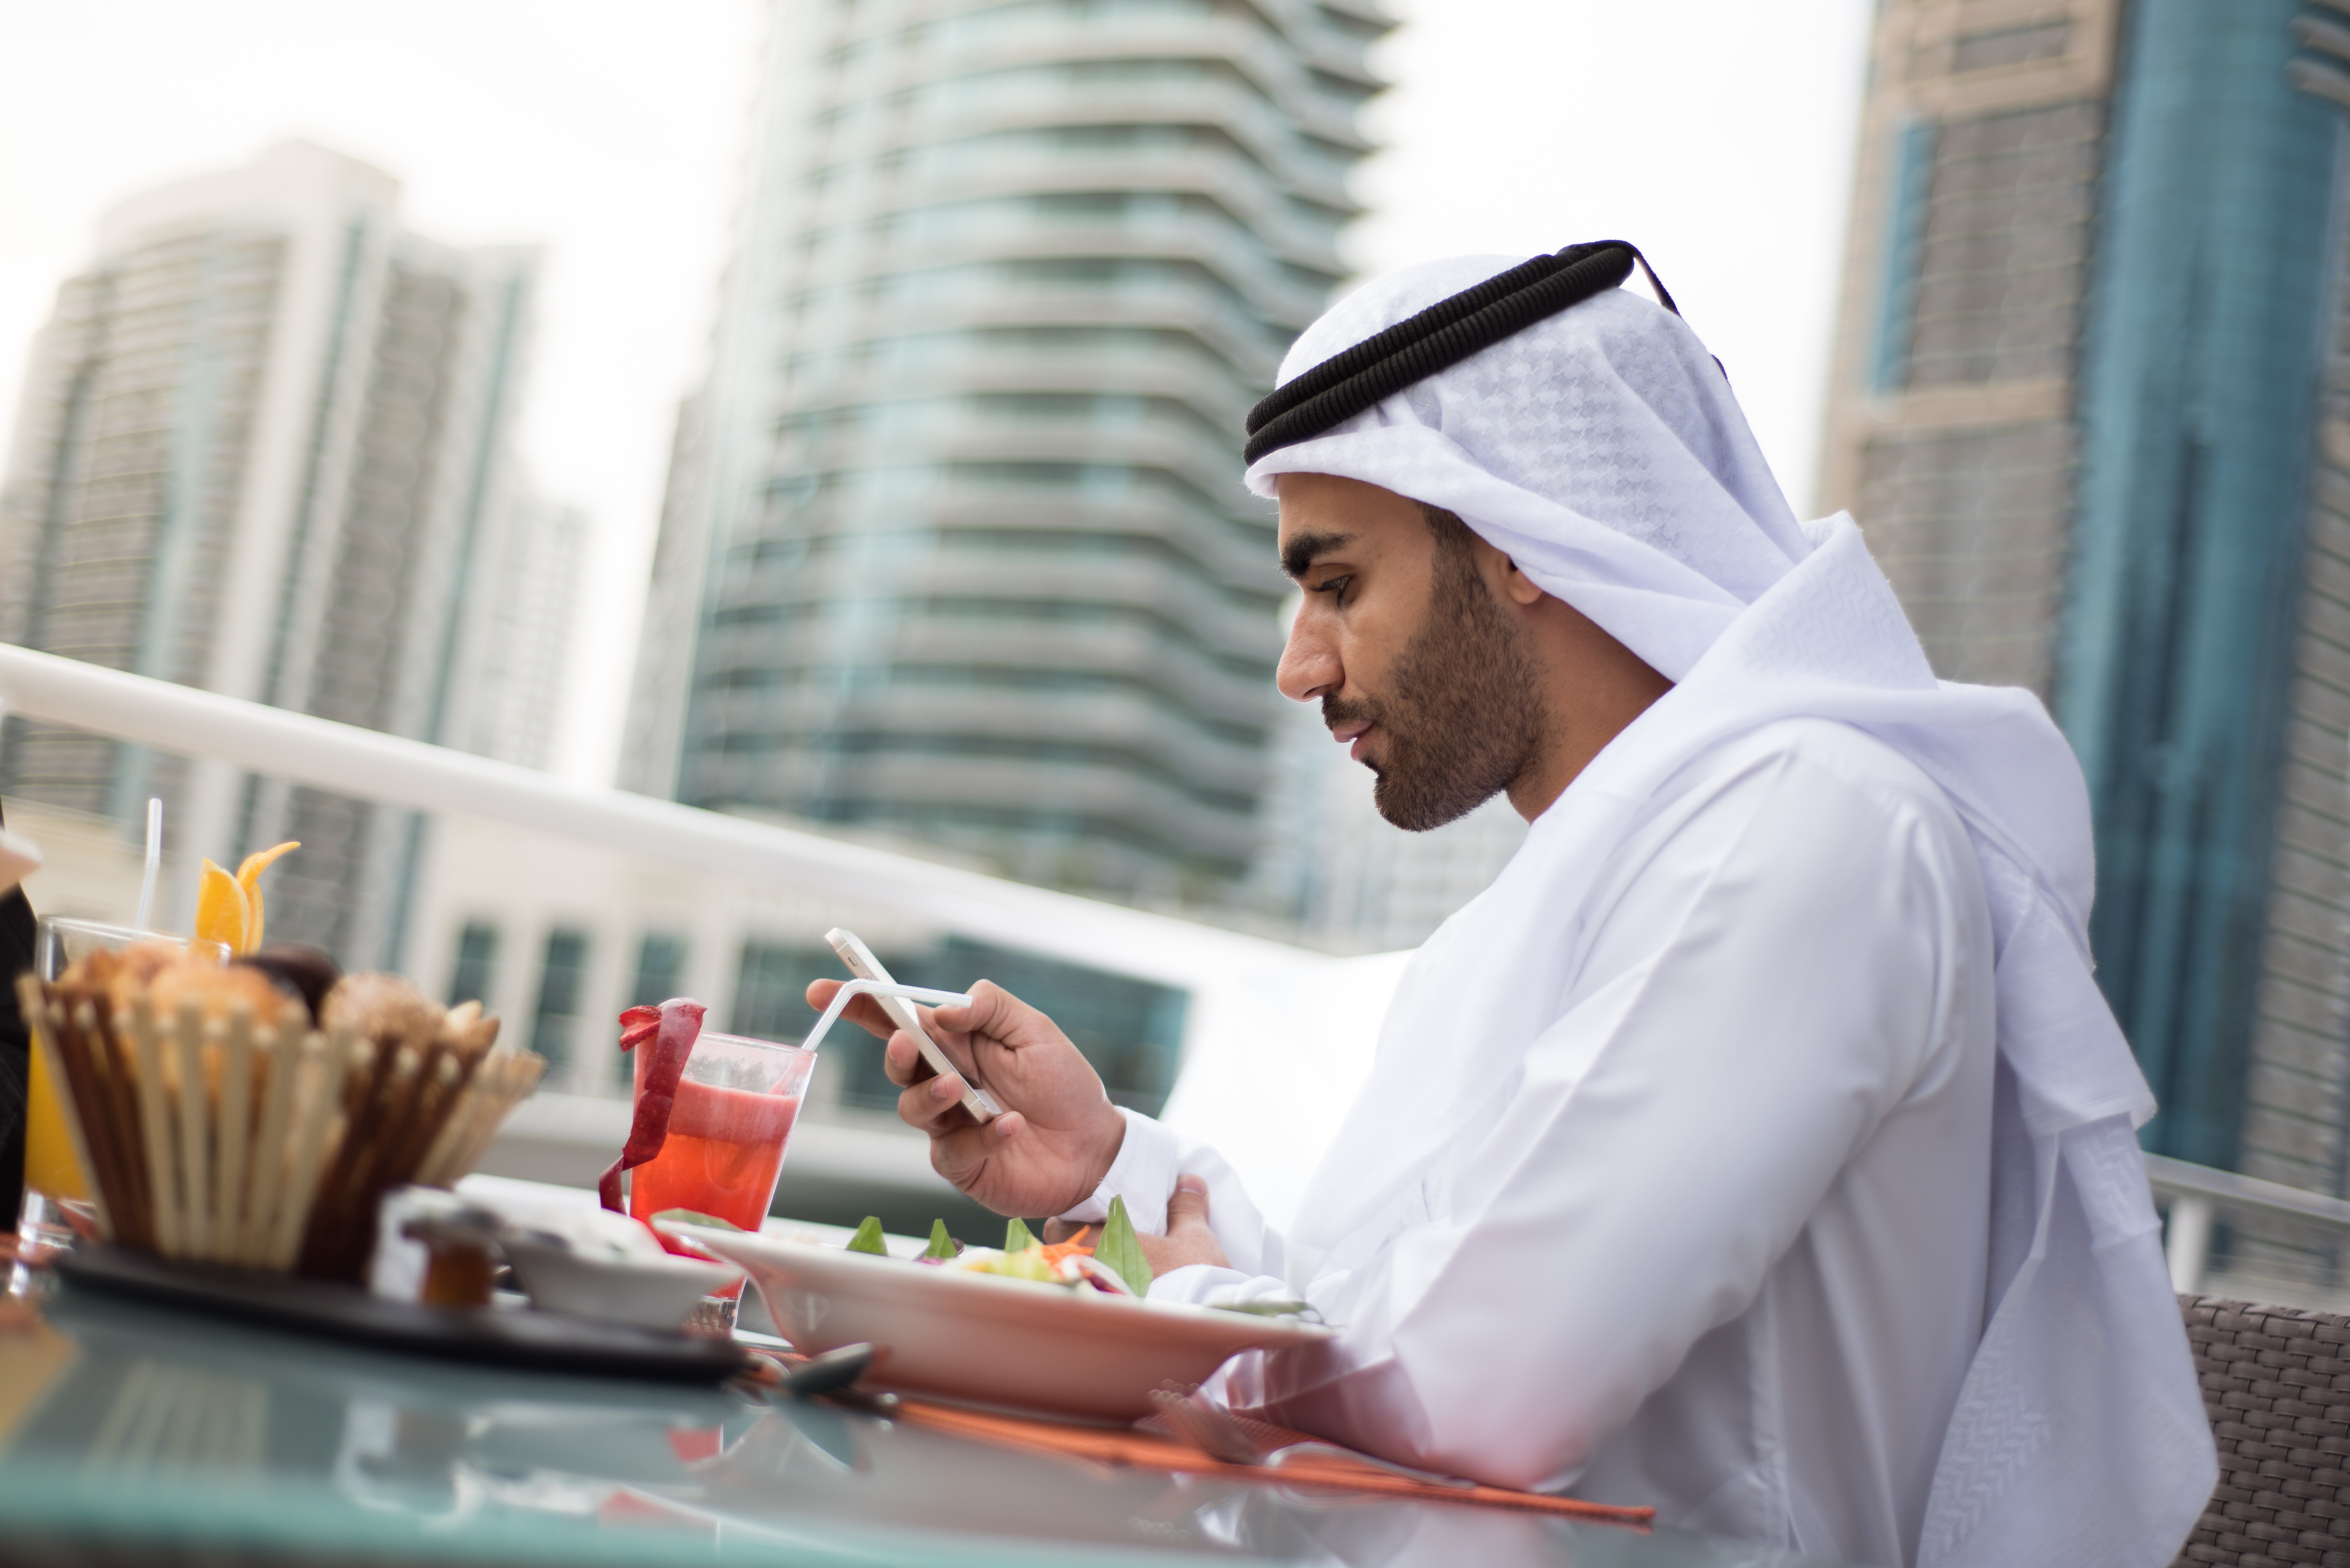 Where can you find the best restaurants in Dubai?